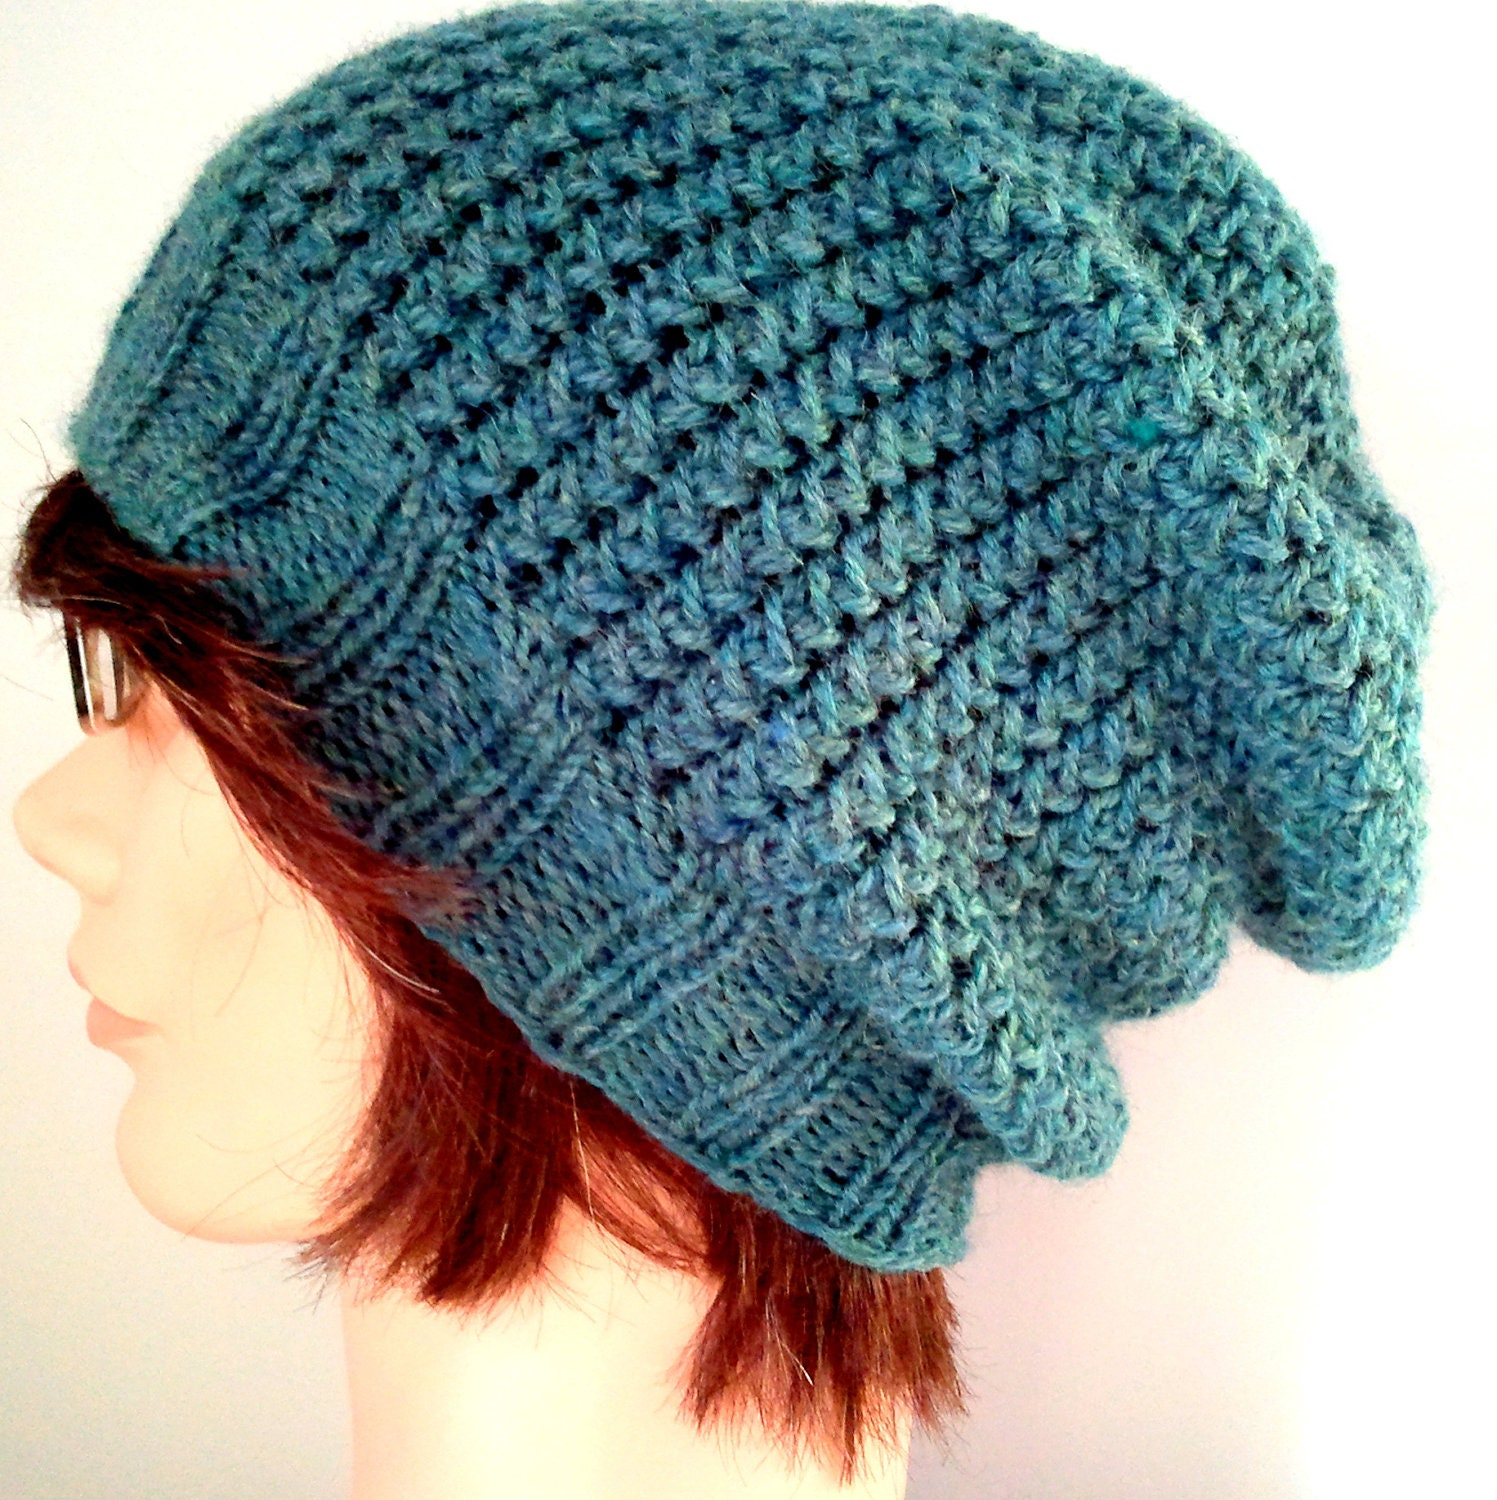 KNITTING PATTERN // PDF instant download // worsted weight